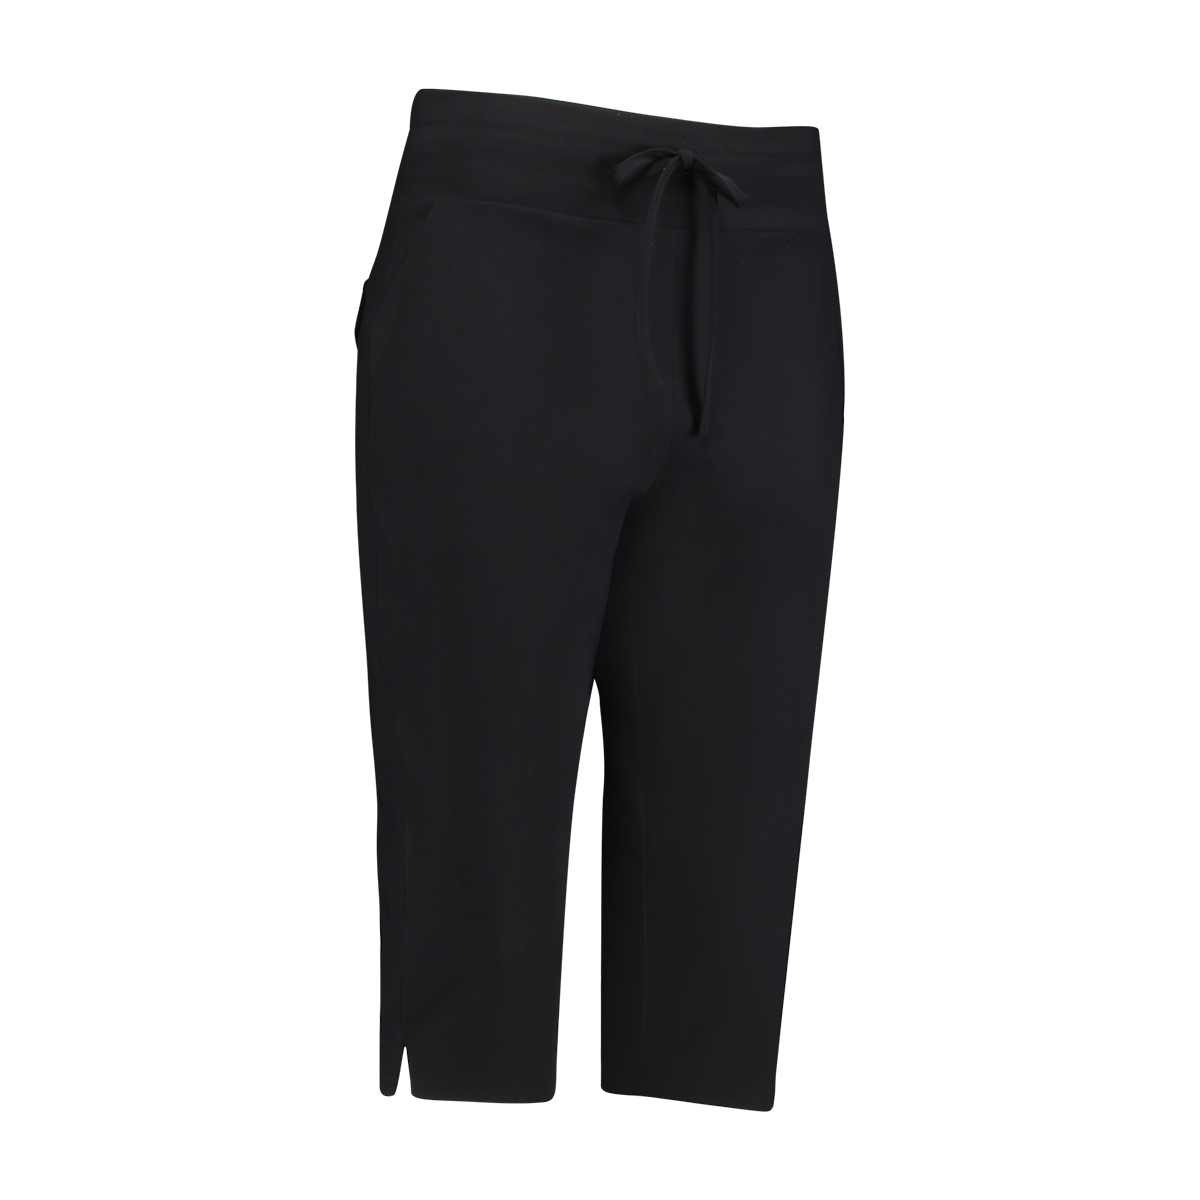 Studio Anneloes UPSTAIRS CAPRI TROUSER 01792 Zwart